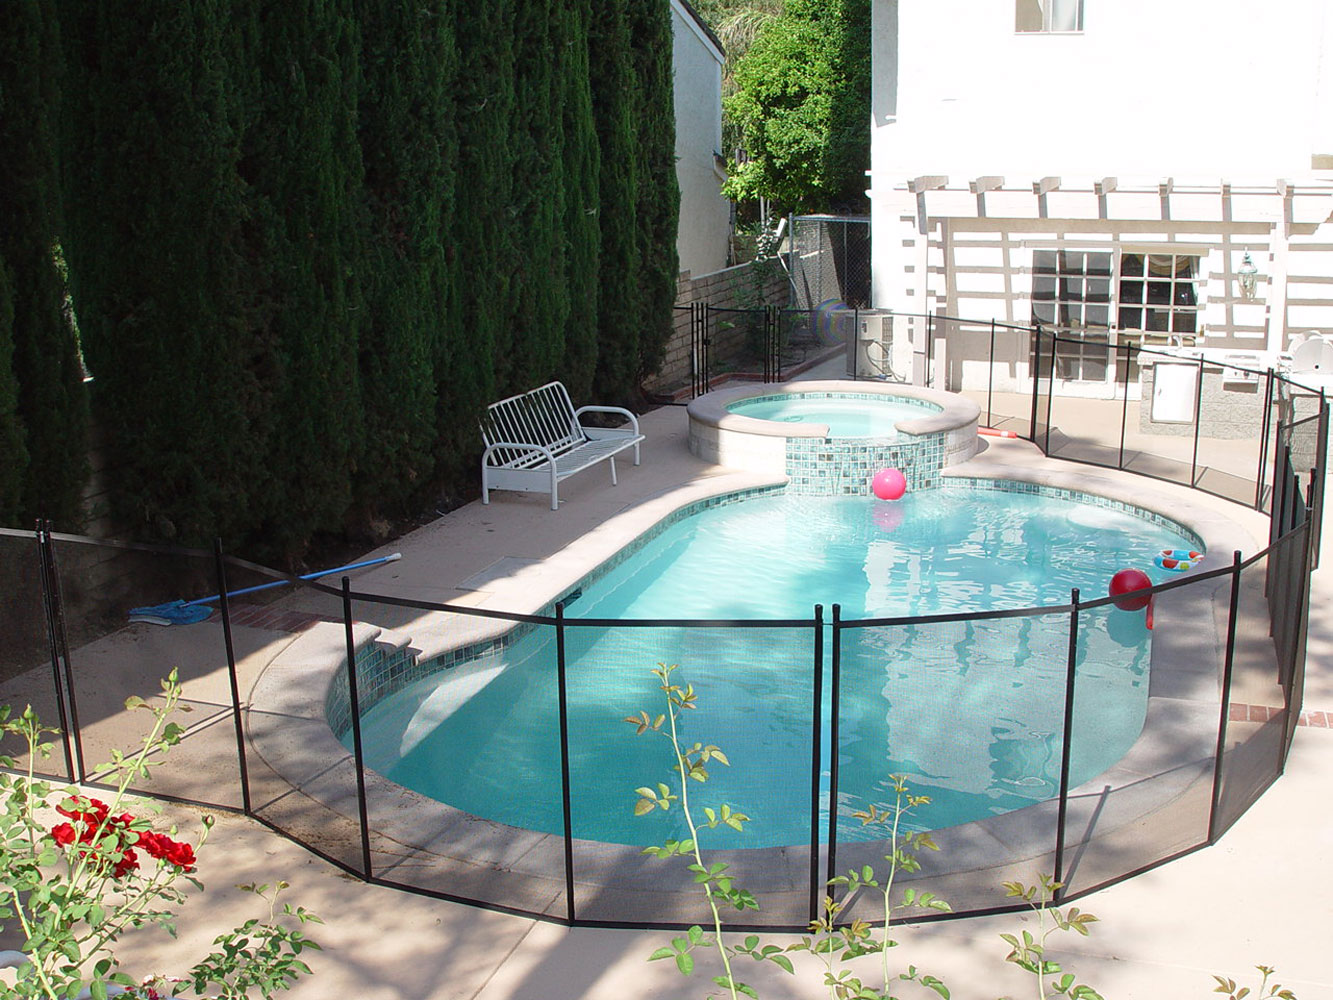 pool-safety-fence-2.jpg